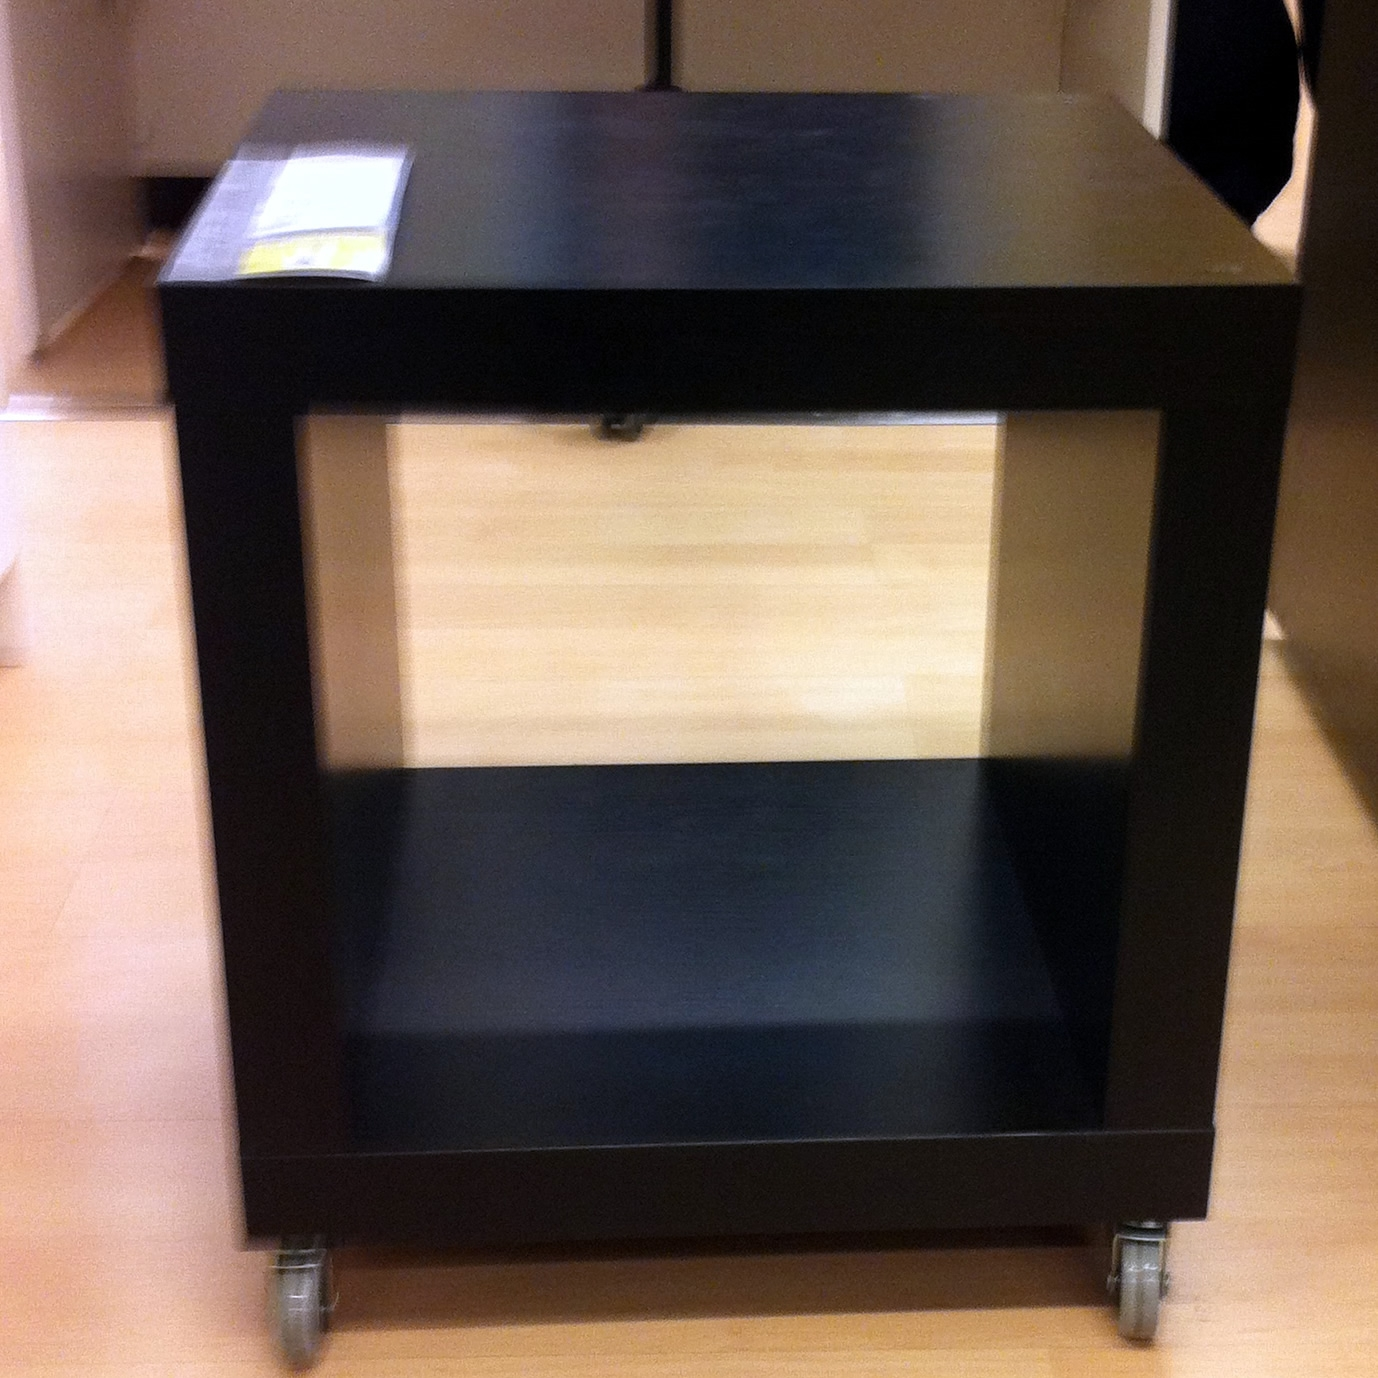 Expedit si mette le rotelle - Ikea lack scaffale ...